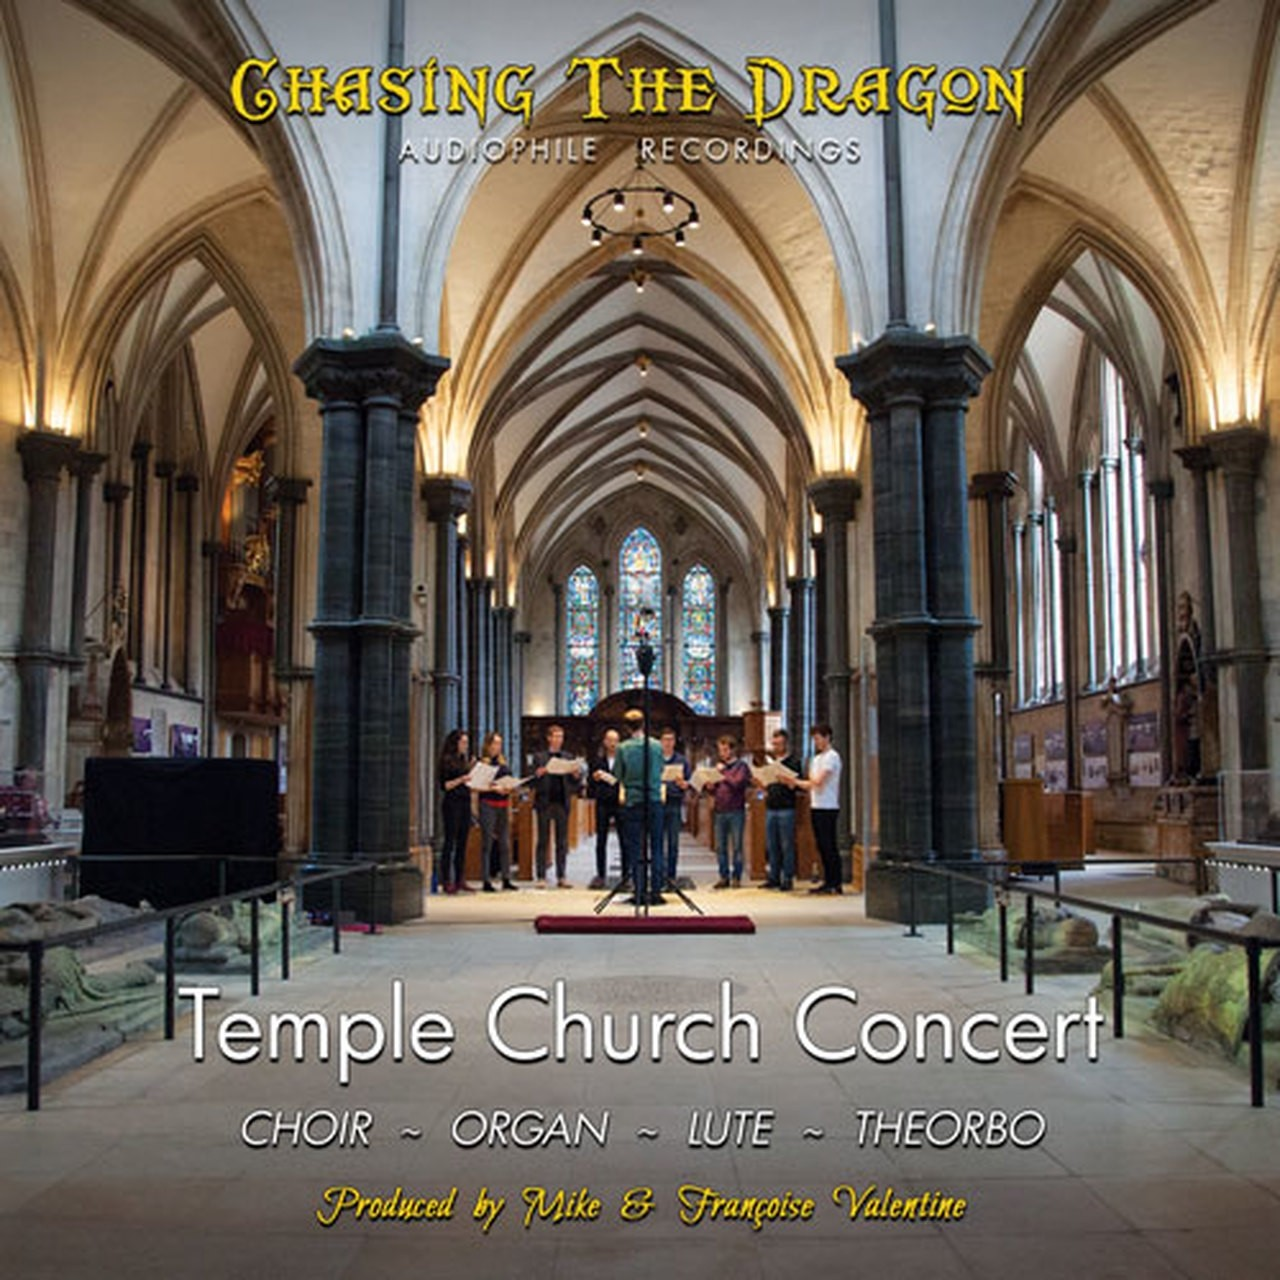 Jonathan Darbourne Ensemble - Temple Church Concert